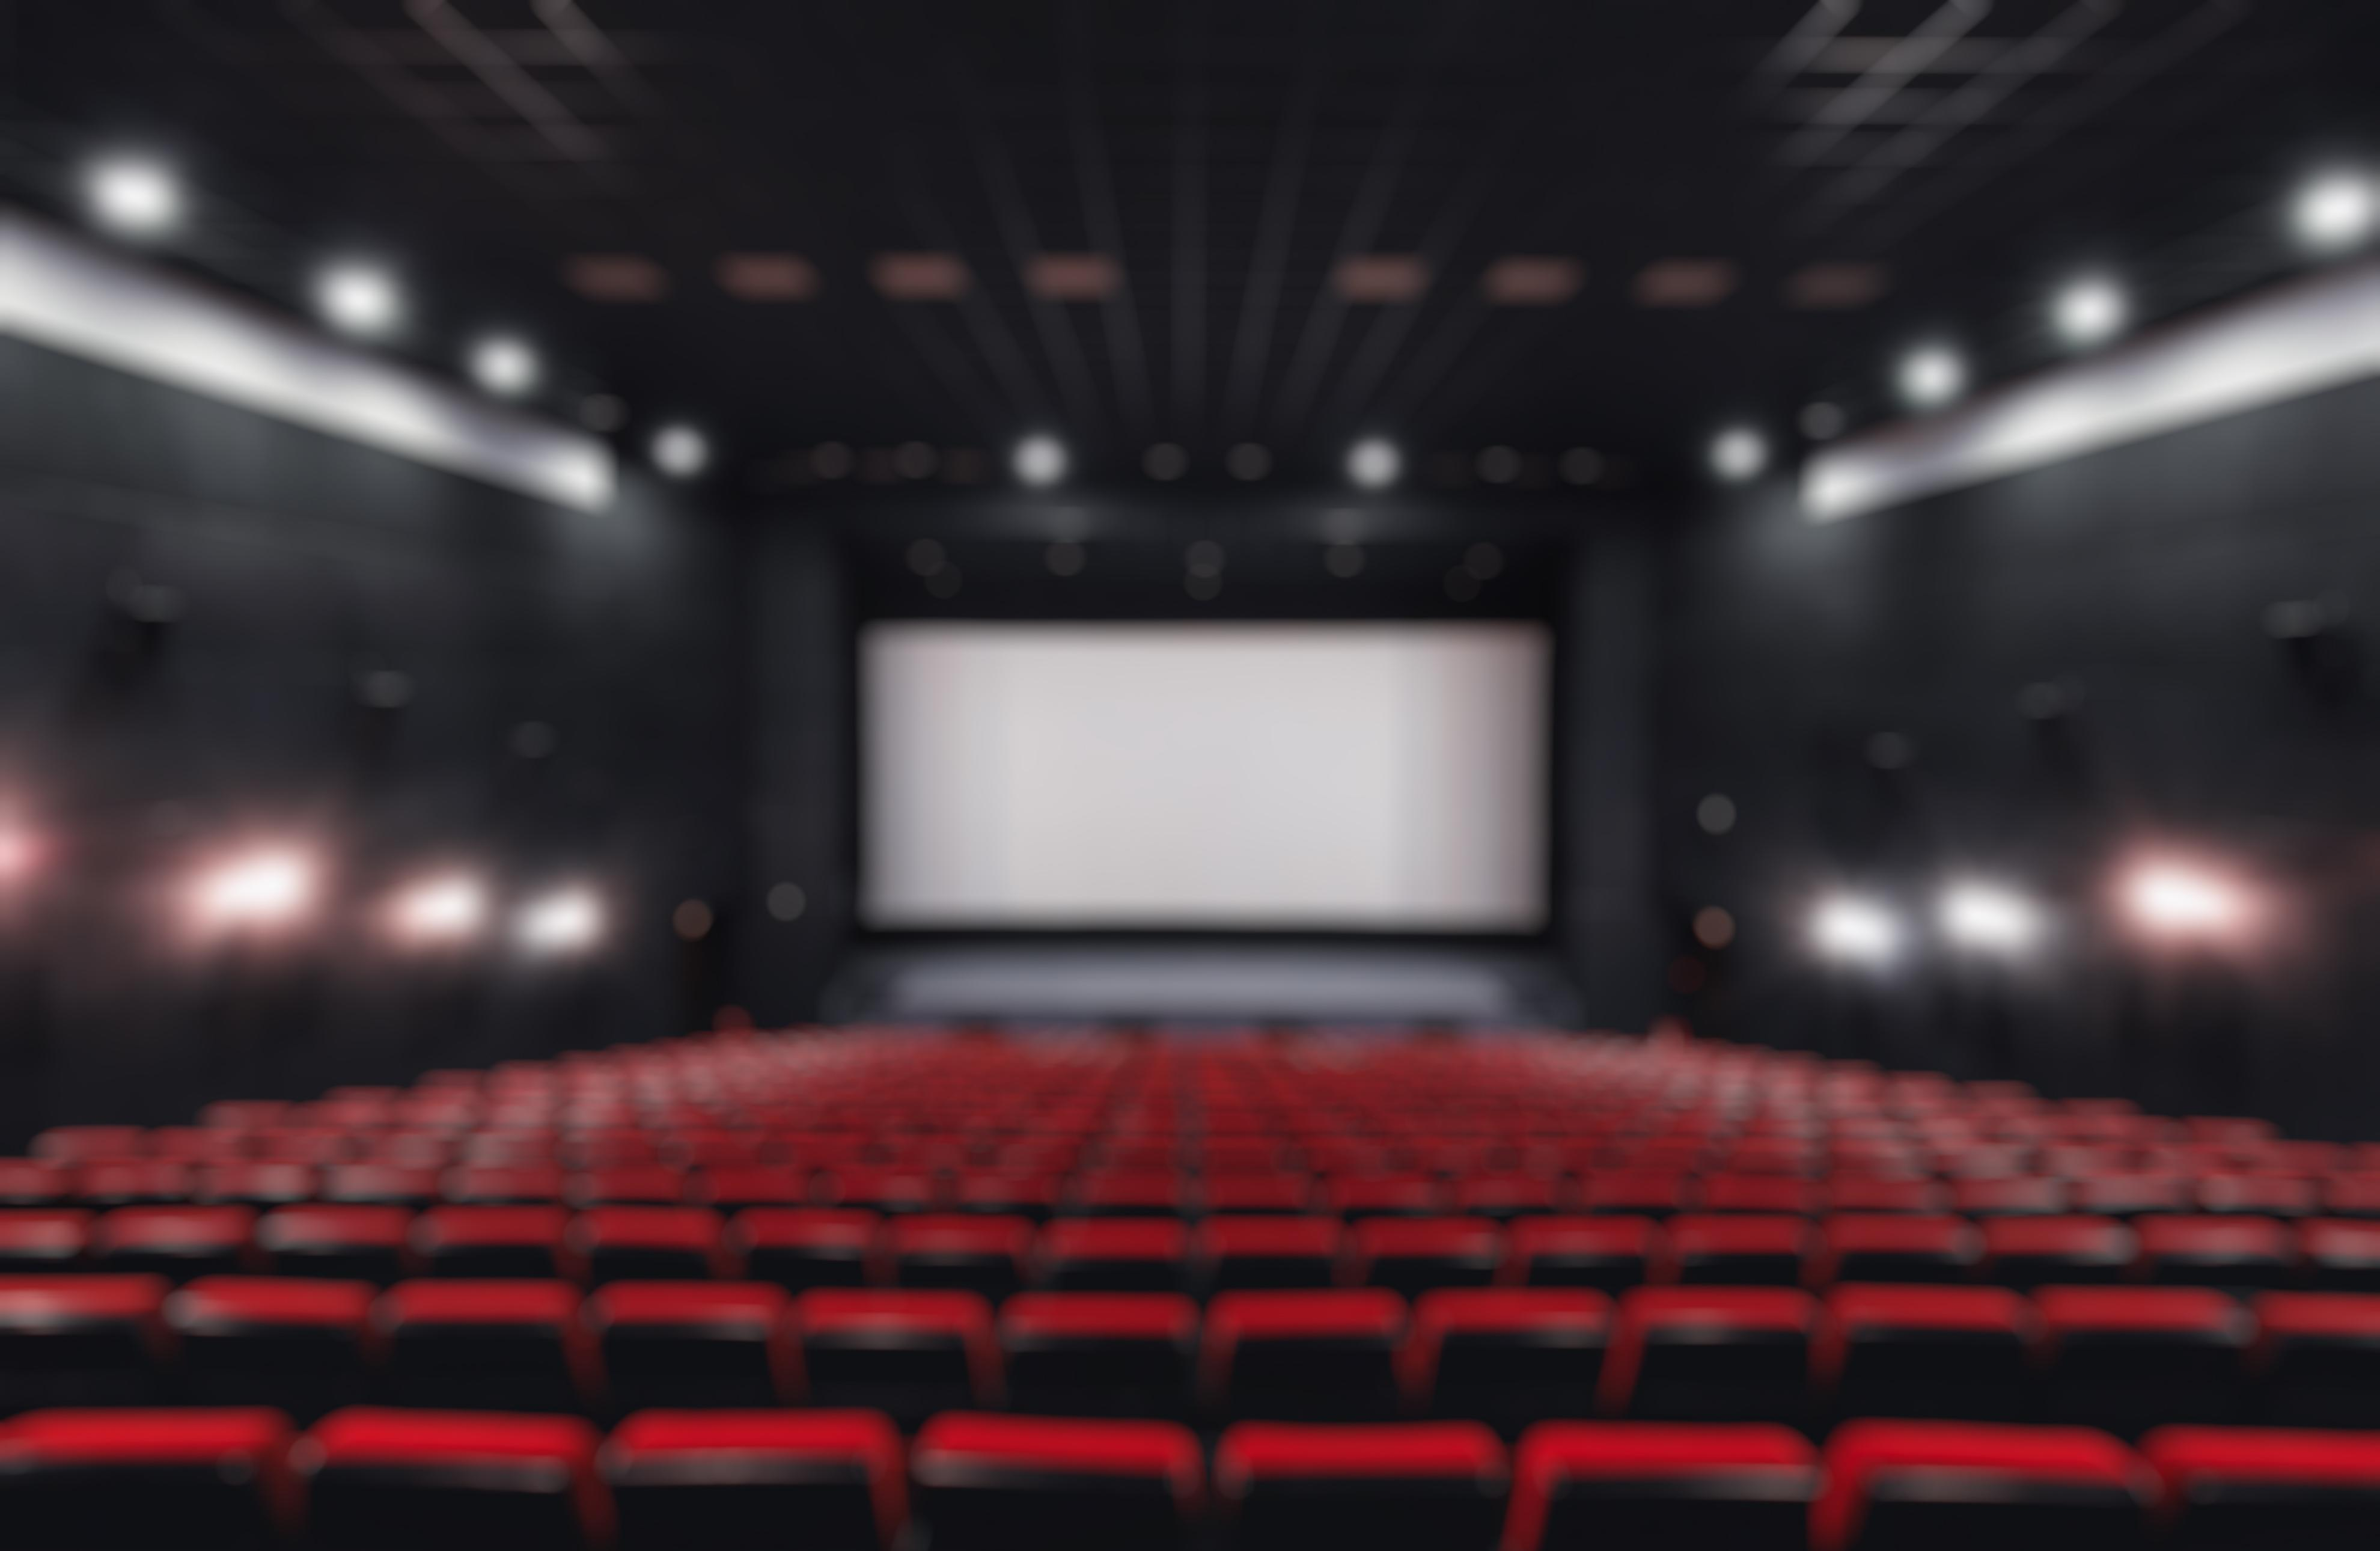 Movie Theater Stocks Continue To Fall Despite Efforts To Address